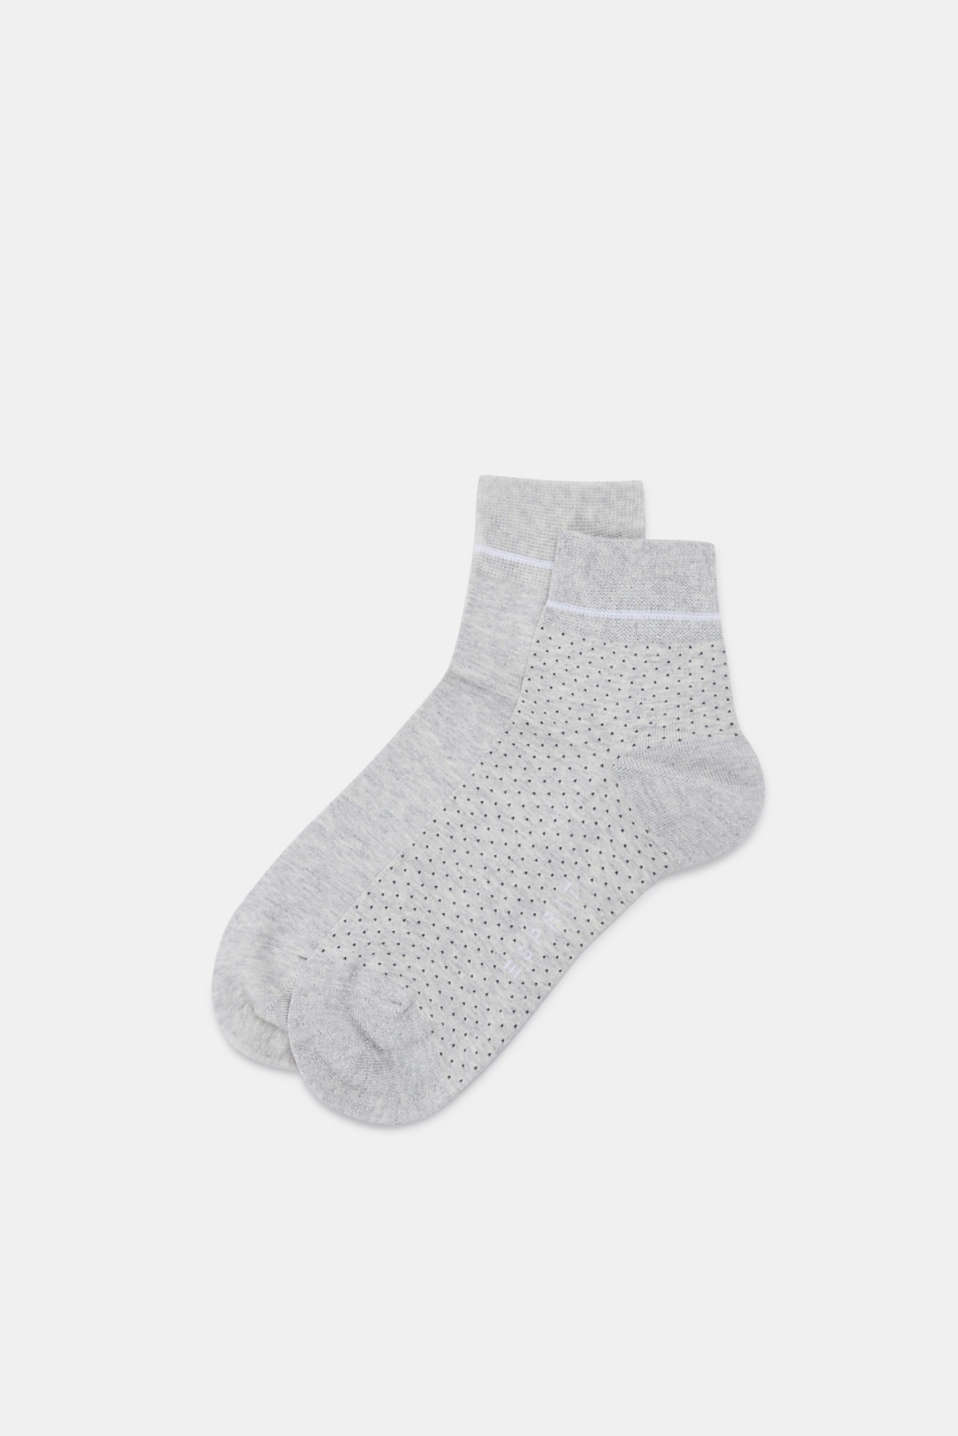 Esprit - 2-pack of socks with glitter detail